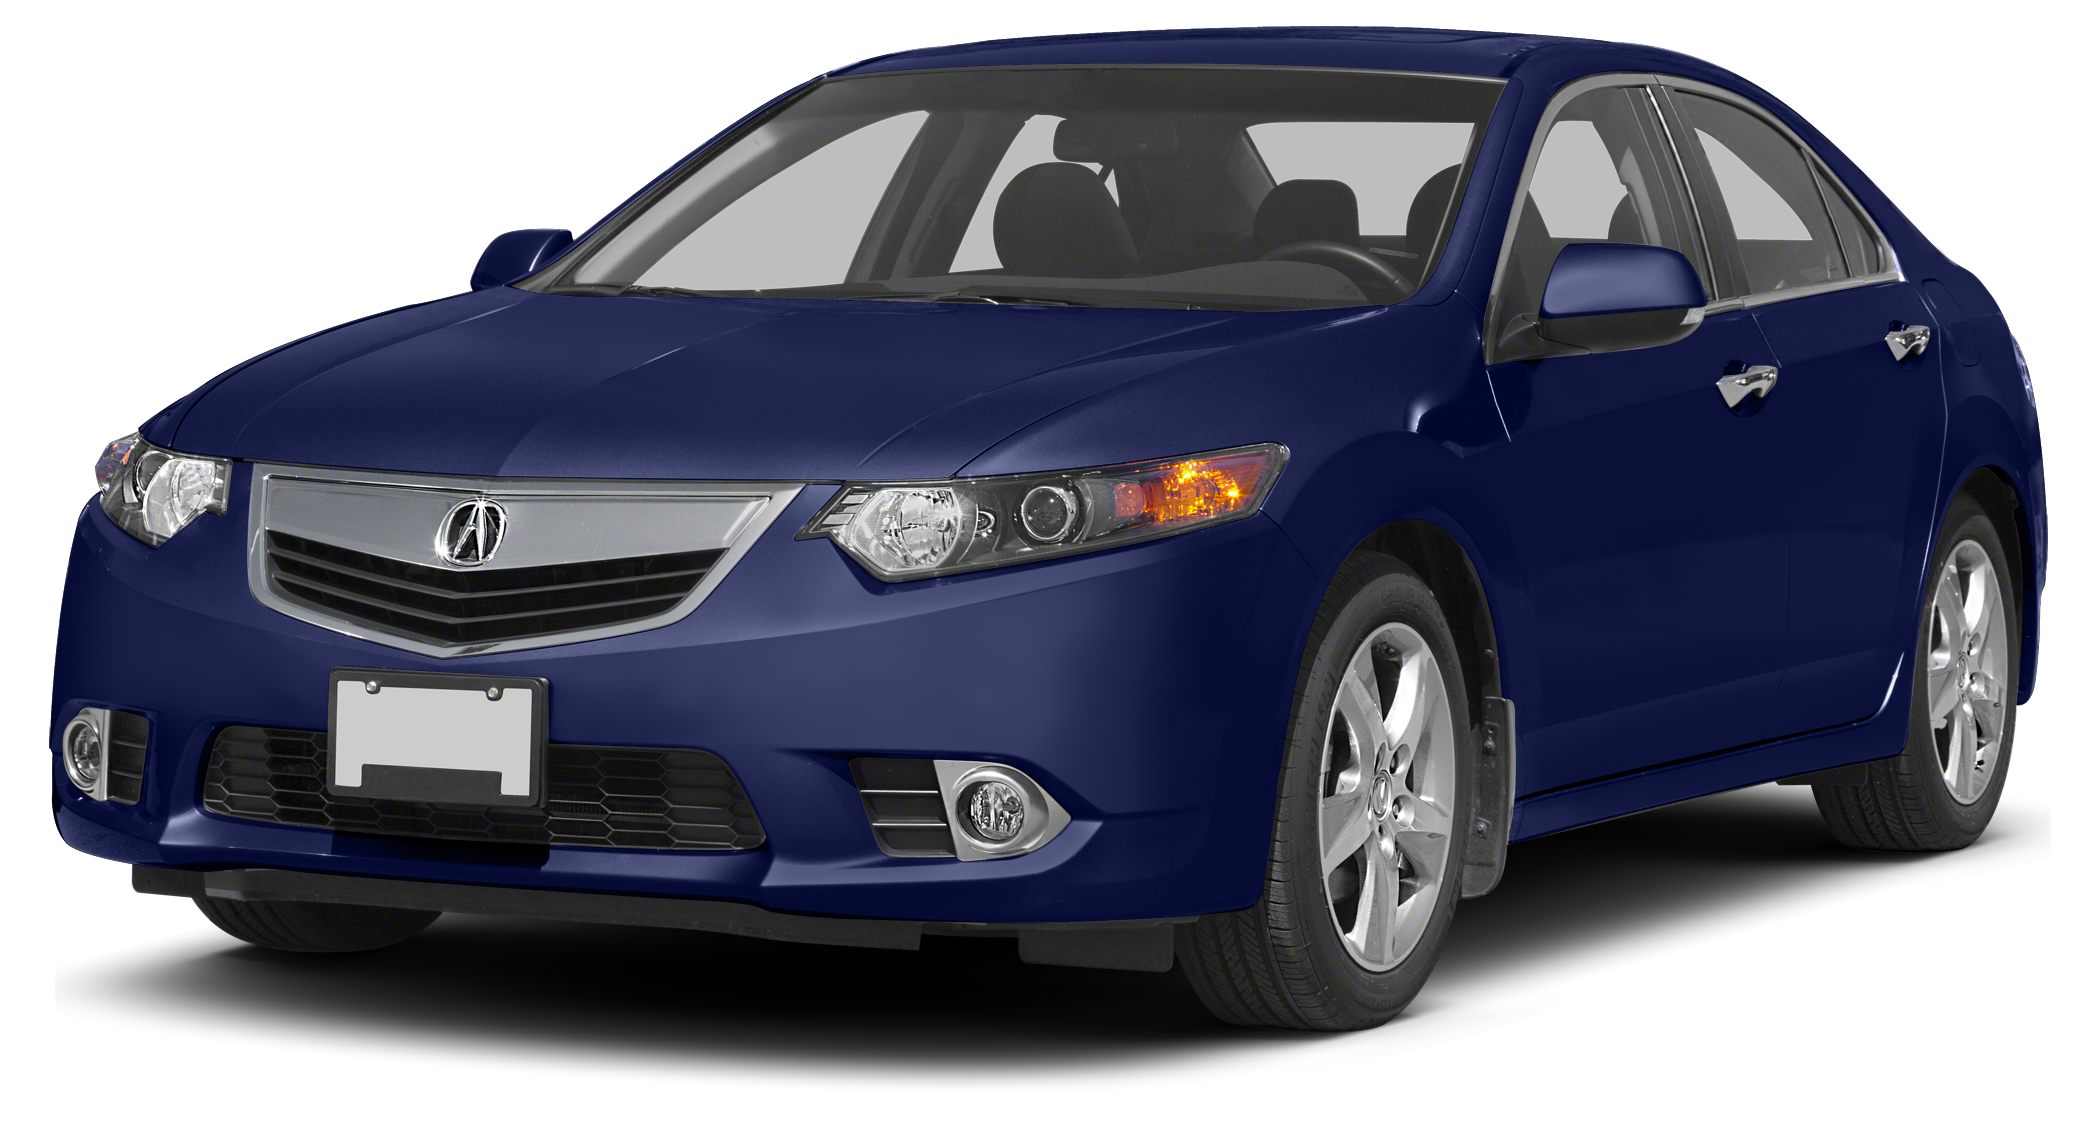 2013 Acura TSX 24 Miles 12254Color Blue Stock A006201A VIN JH4CU2F40DC003605